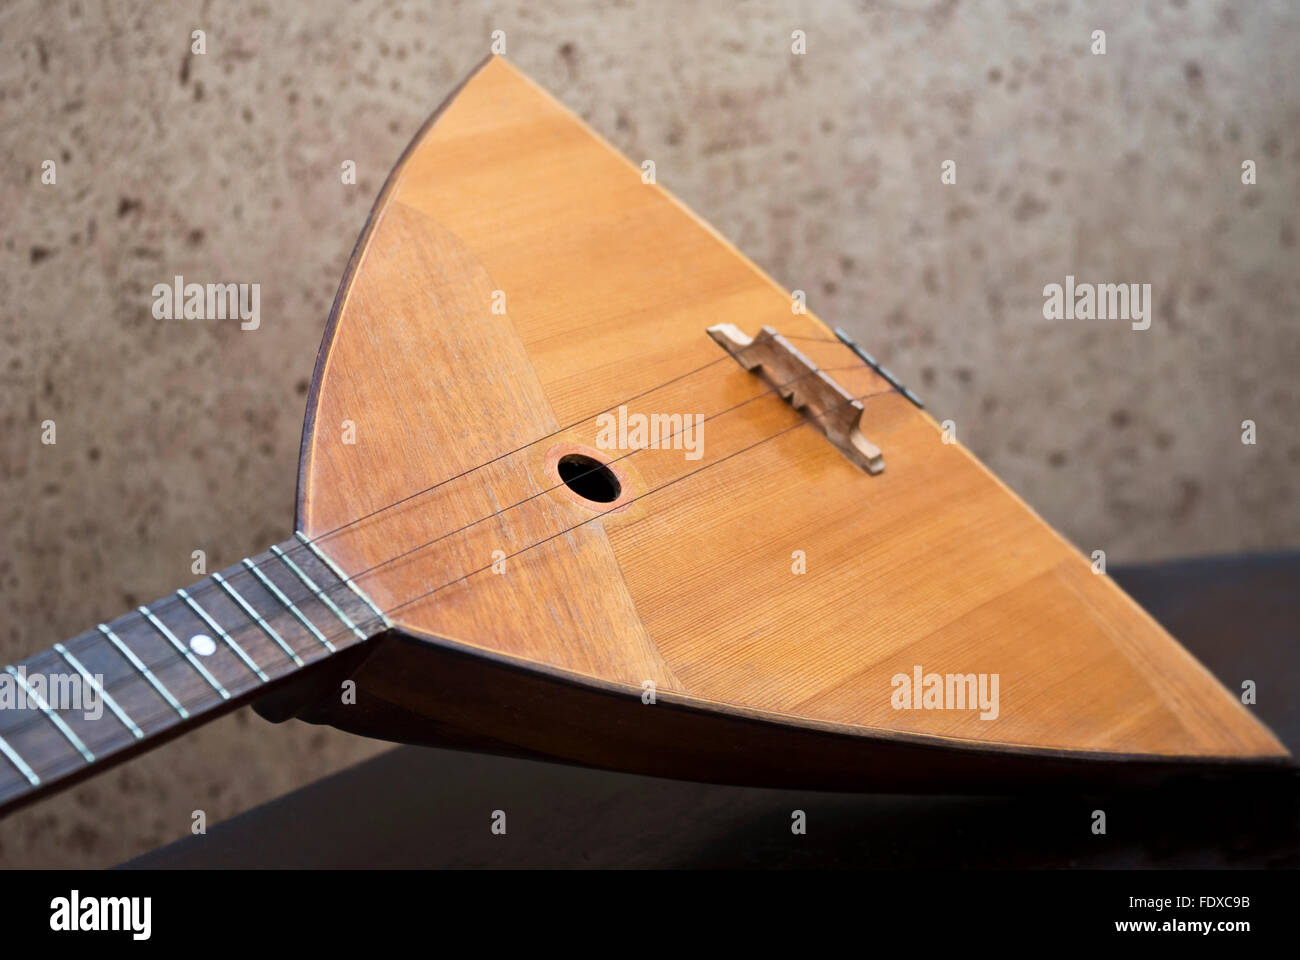 The balalaika is a Russian stringed musical instrument - Stock Image